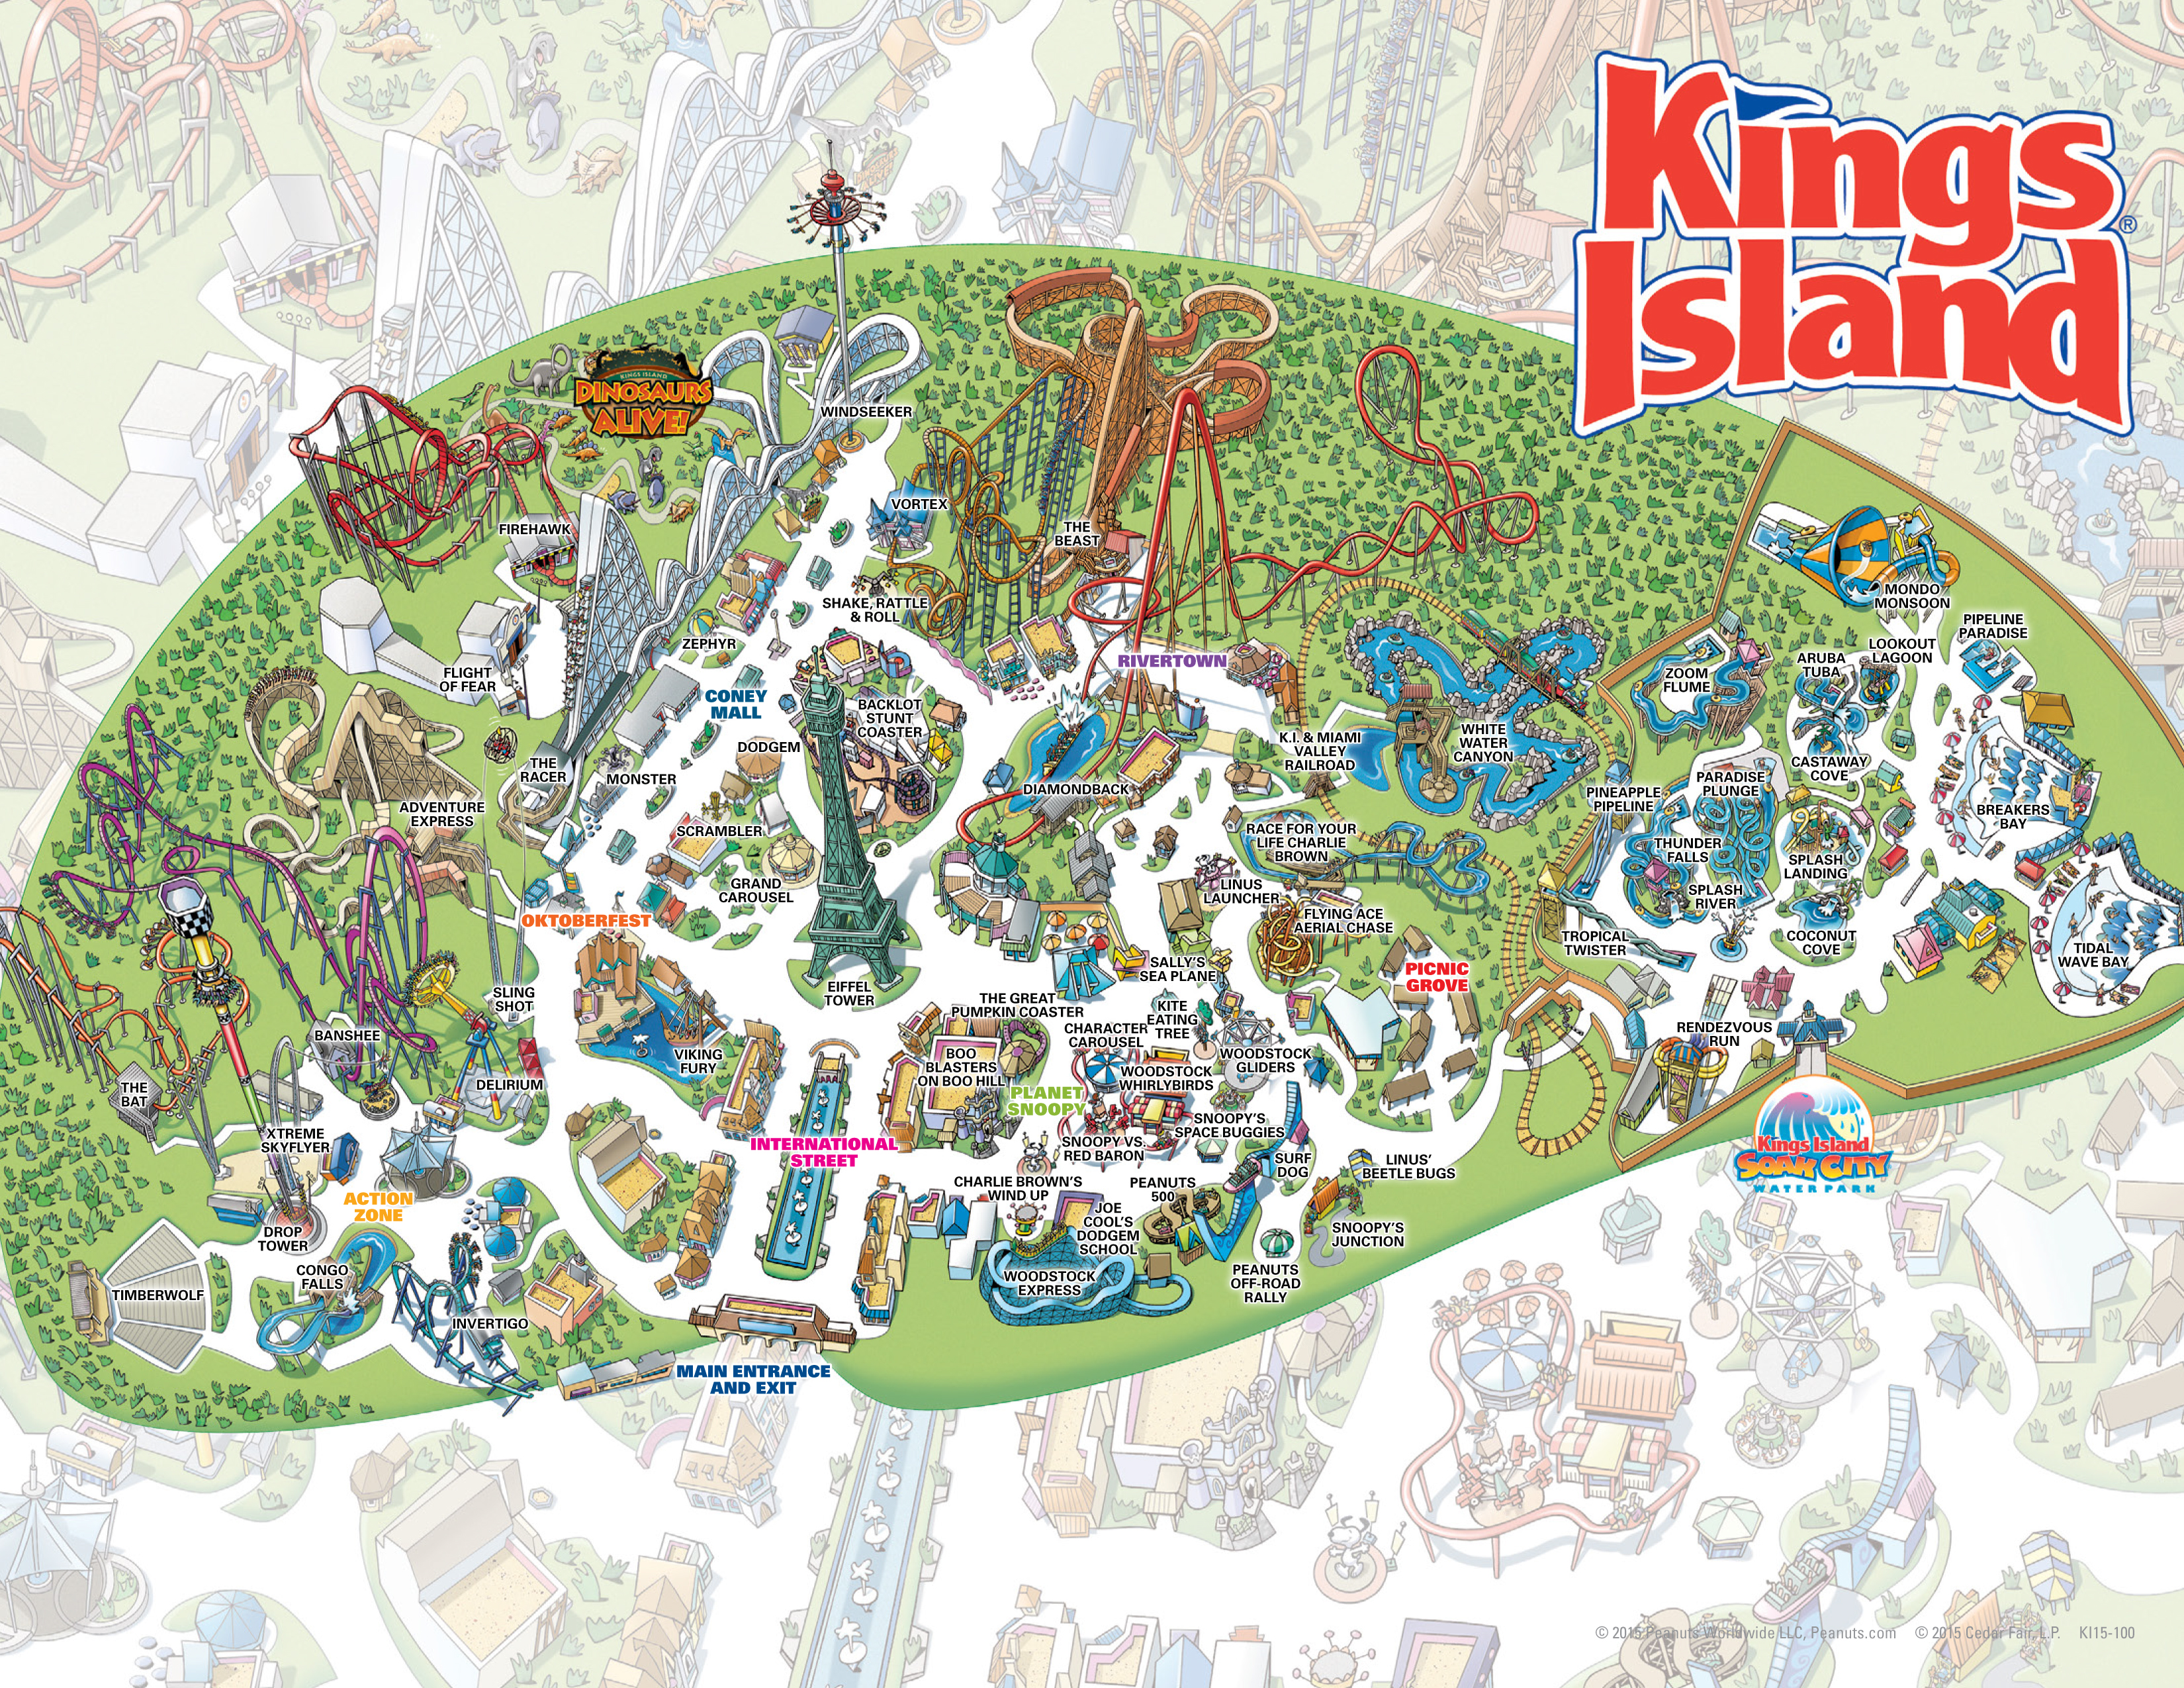 Kings island historical maps cp food blog 2015 kings island map gumiabroncs Gallery